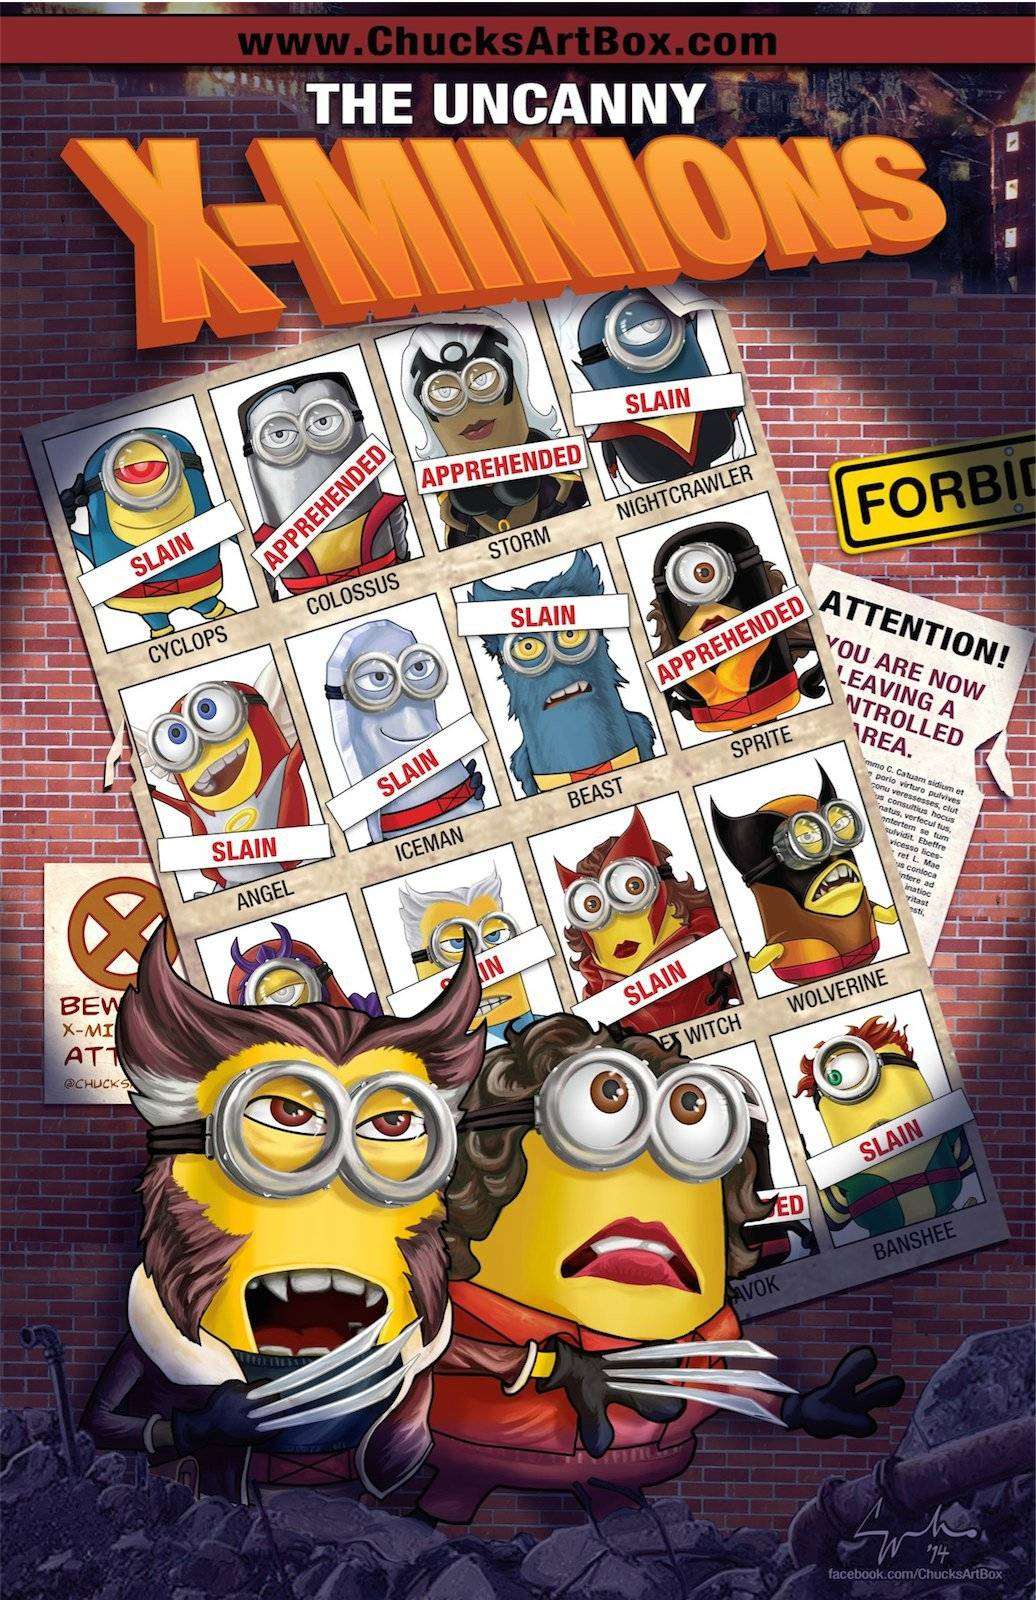 Vamers - Artistry - X-MINIONS Days of Future Past - Despicable Me Minions as X-MEN - Uncanny X-MEN Poster